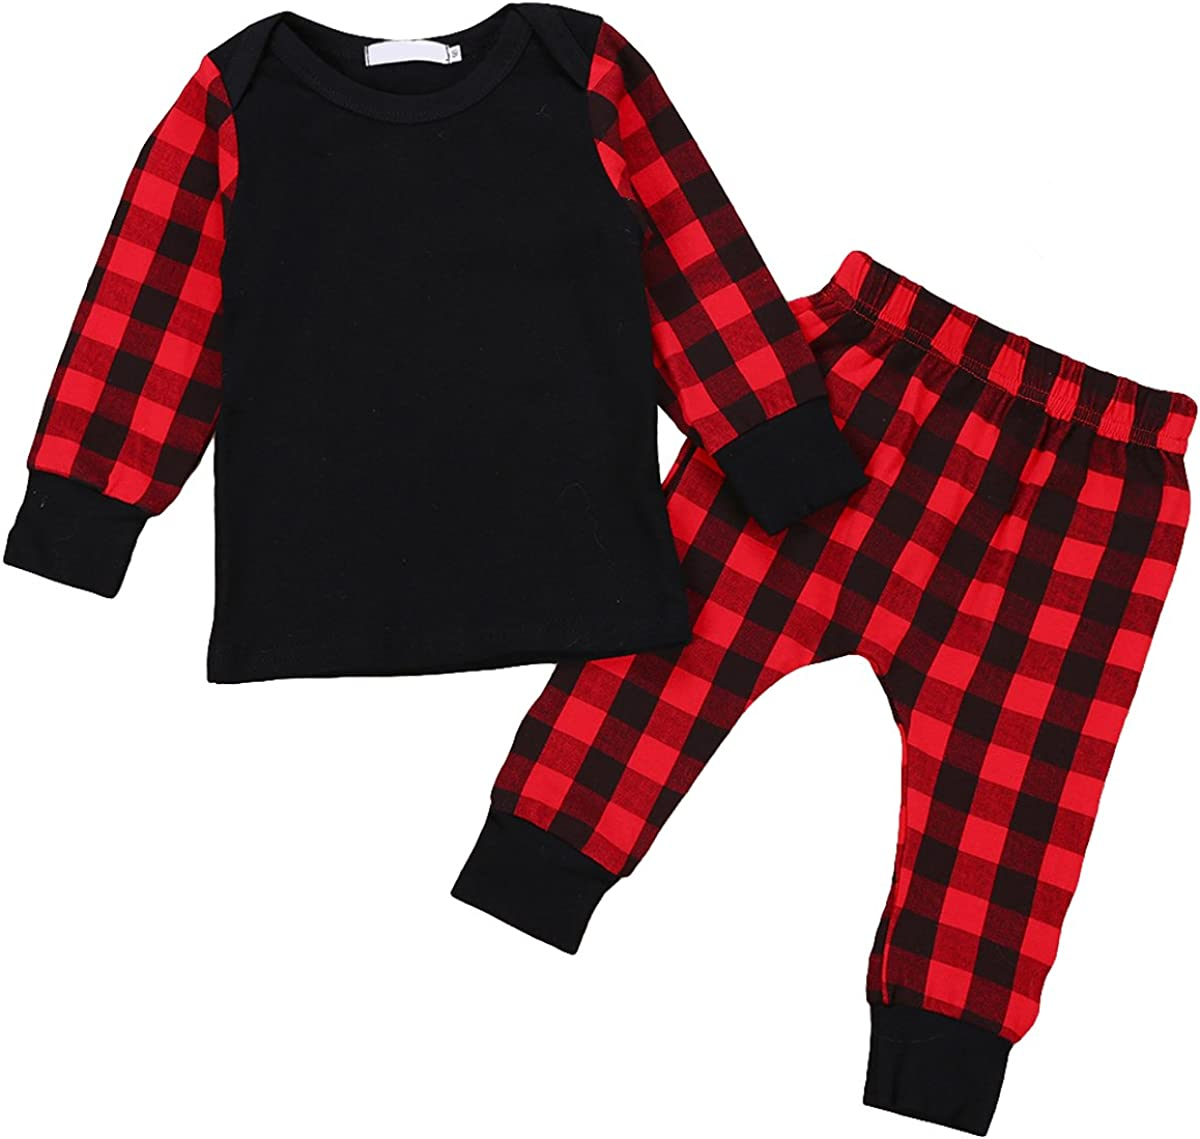 Baby Kids Girls Boys Christmas Outfit Plaid Long Sleeve Tops + Pants Sets Clothes